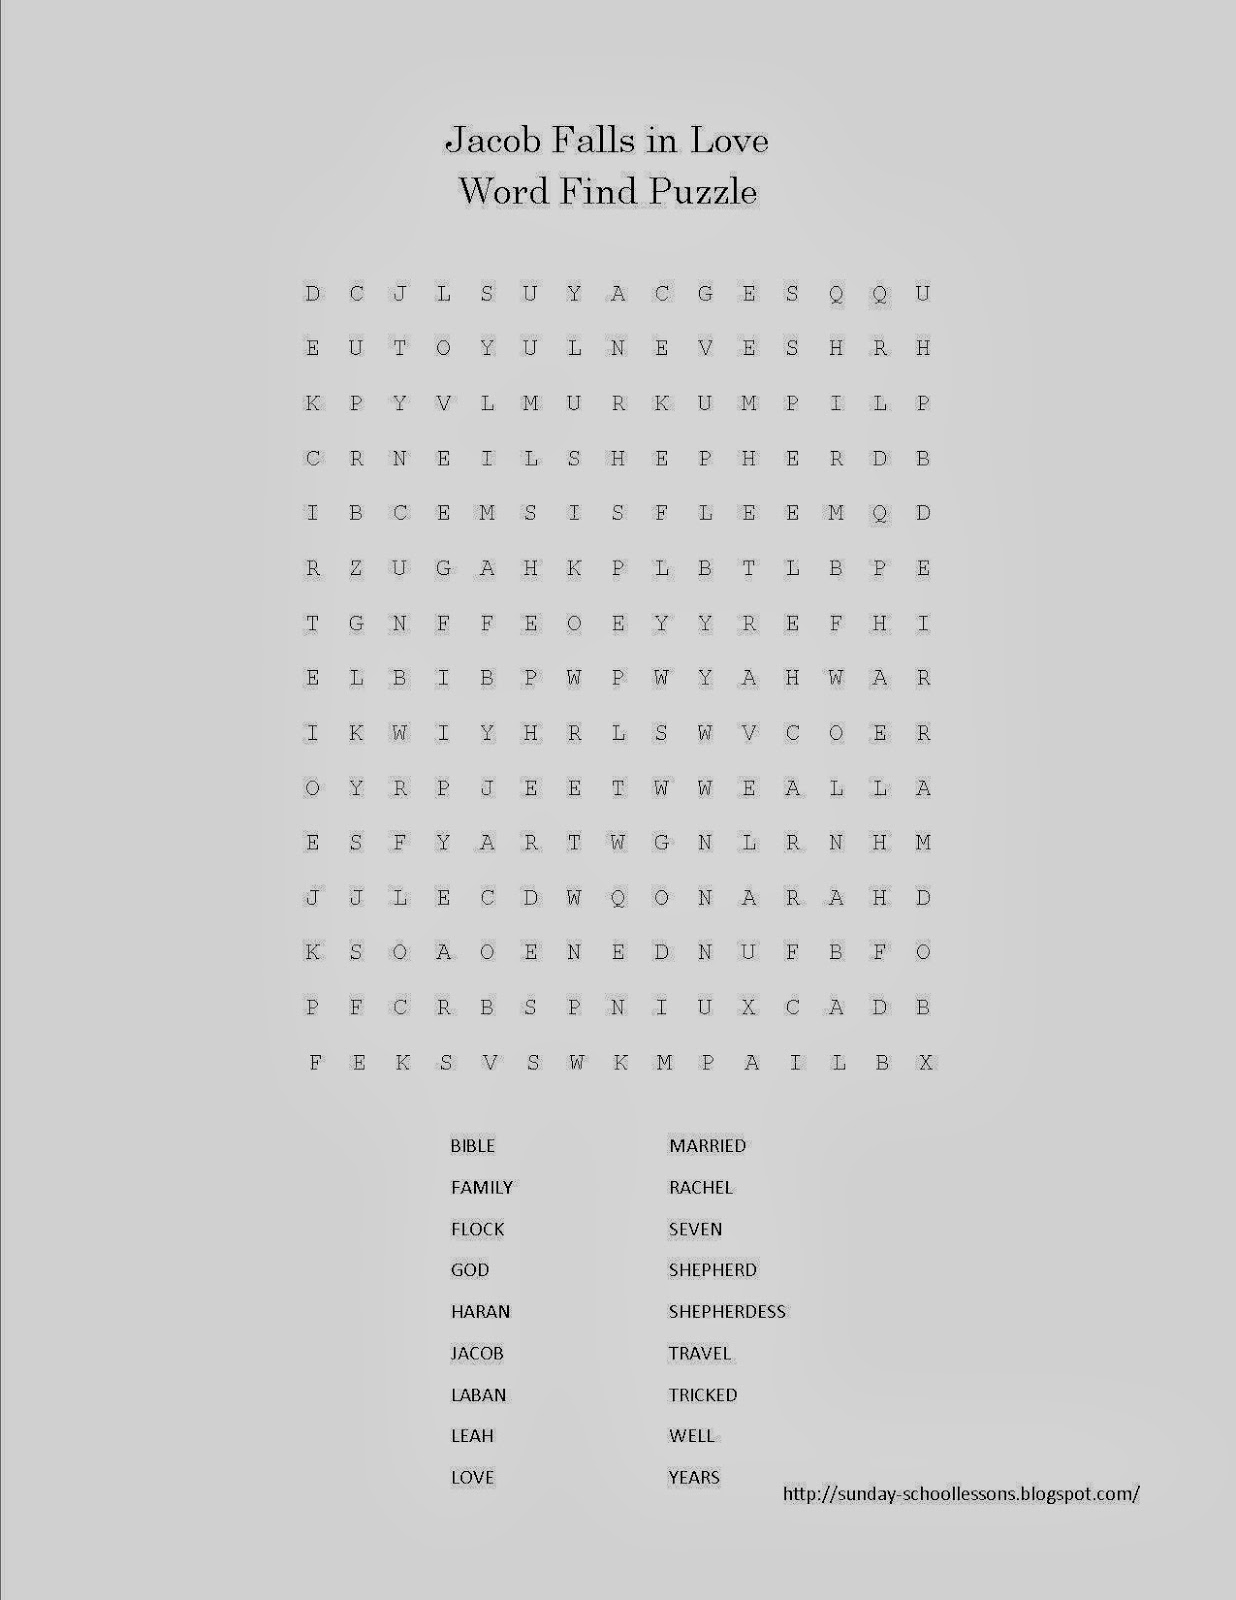 Jacob Falls In Love Word Search Puzzle